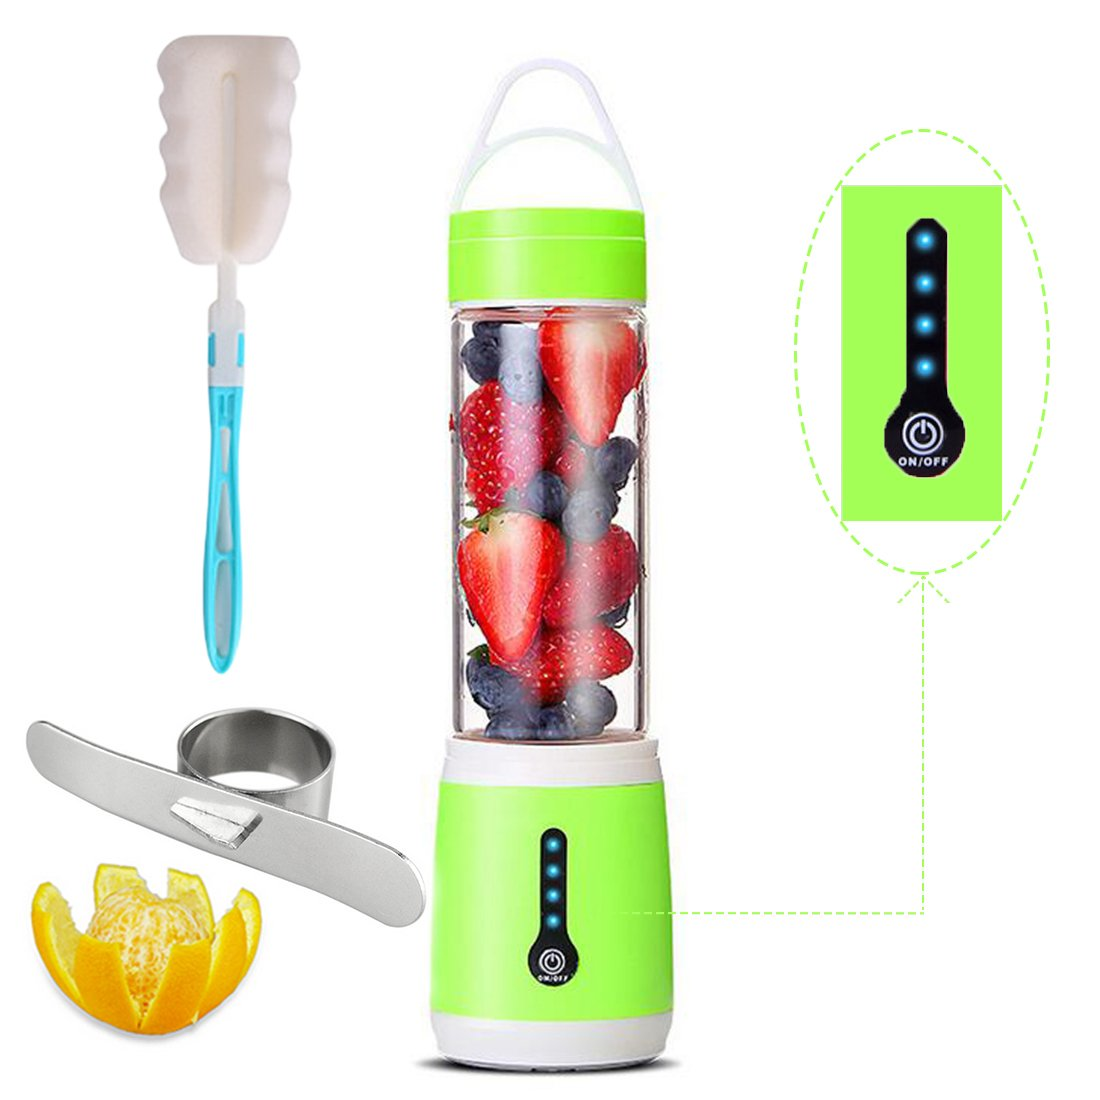 Juicer Cup 6 Blades Portable blender Personal Household Rechargeable Fruit Mixer with Powerful Motor, Electric Food Mixing Machine with Magnetic Secure Switch,USB Charger&Barker For Travel 480ML-Green